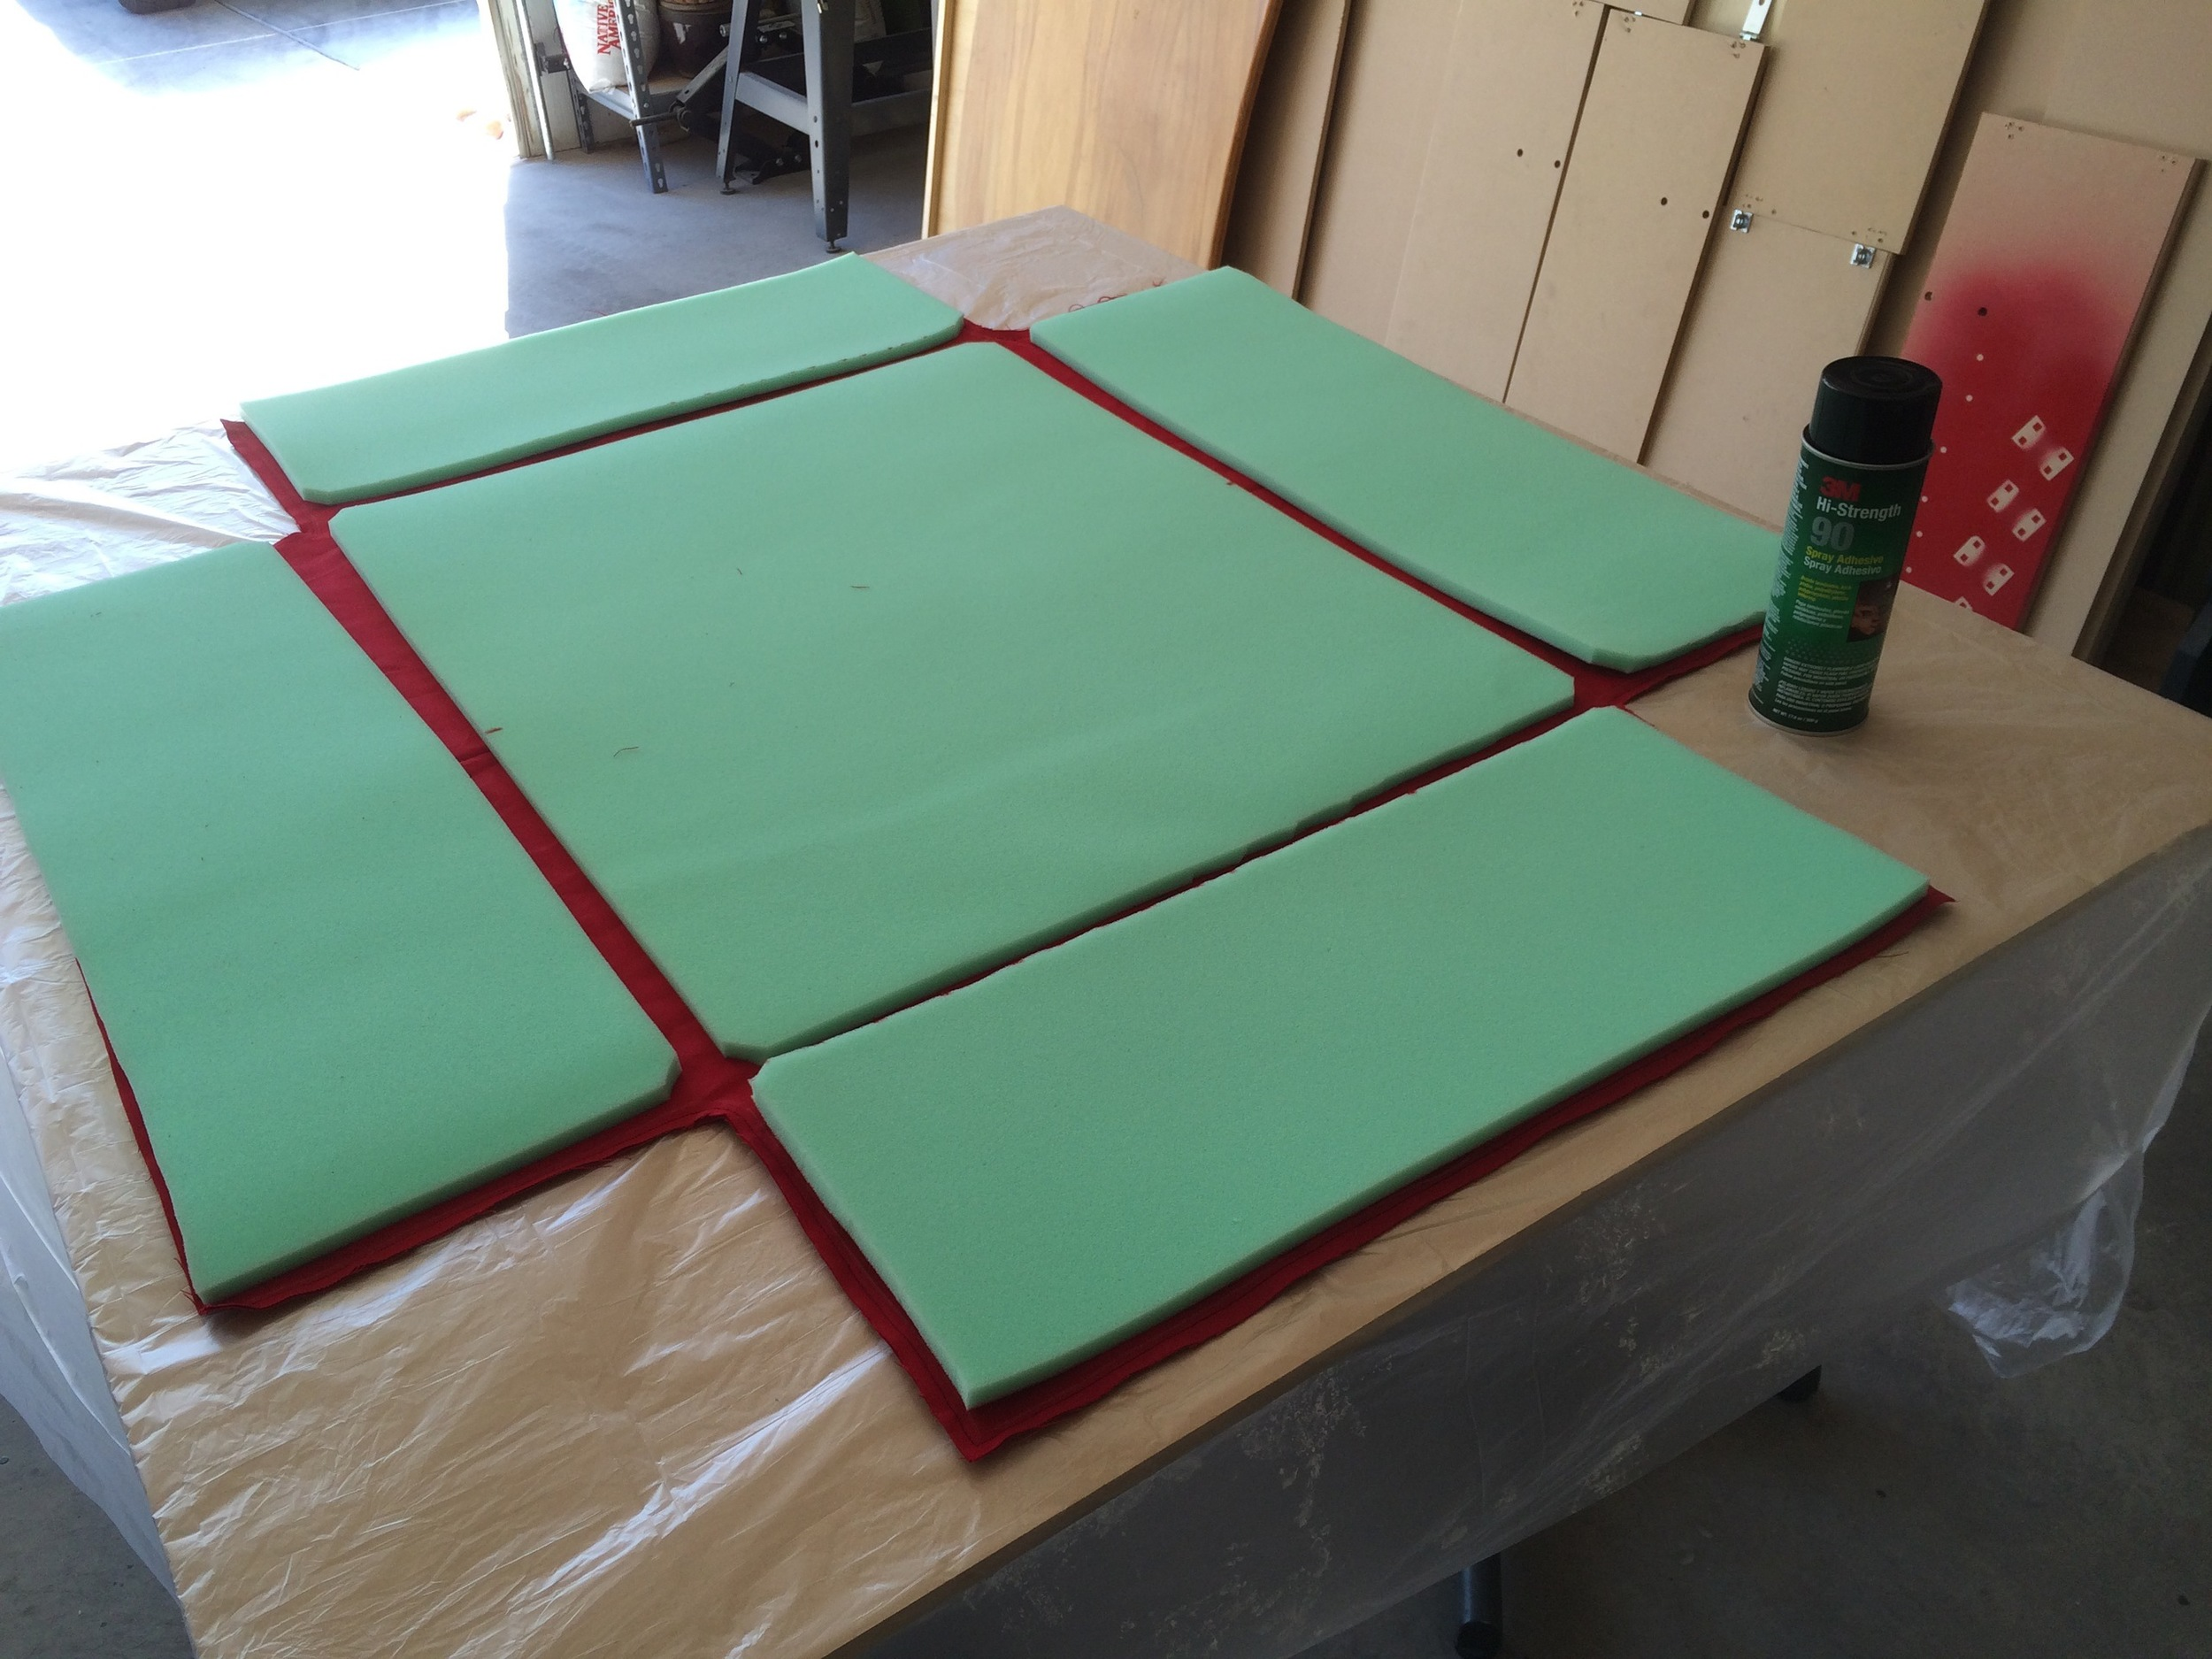 Foam being glued into inside-out padding cover fabric